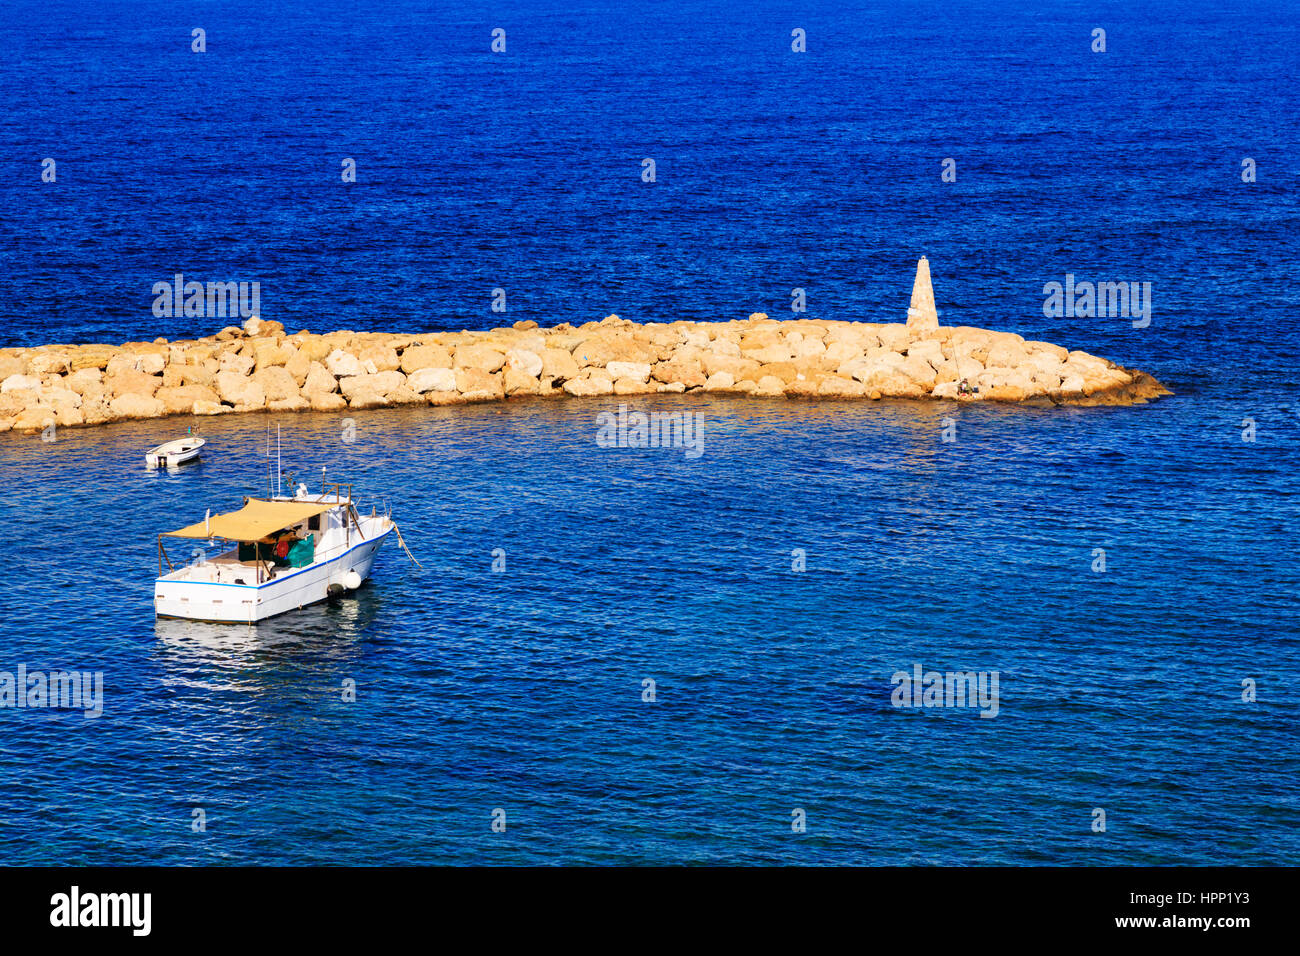 Boat and fisherman in Agios Georgios Harbour, Paphos, Cyprus. - Stock Image